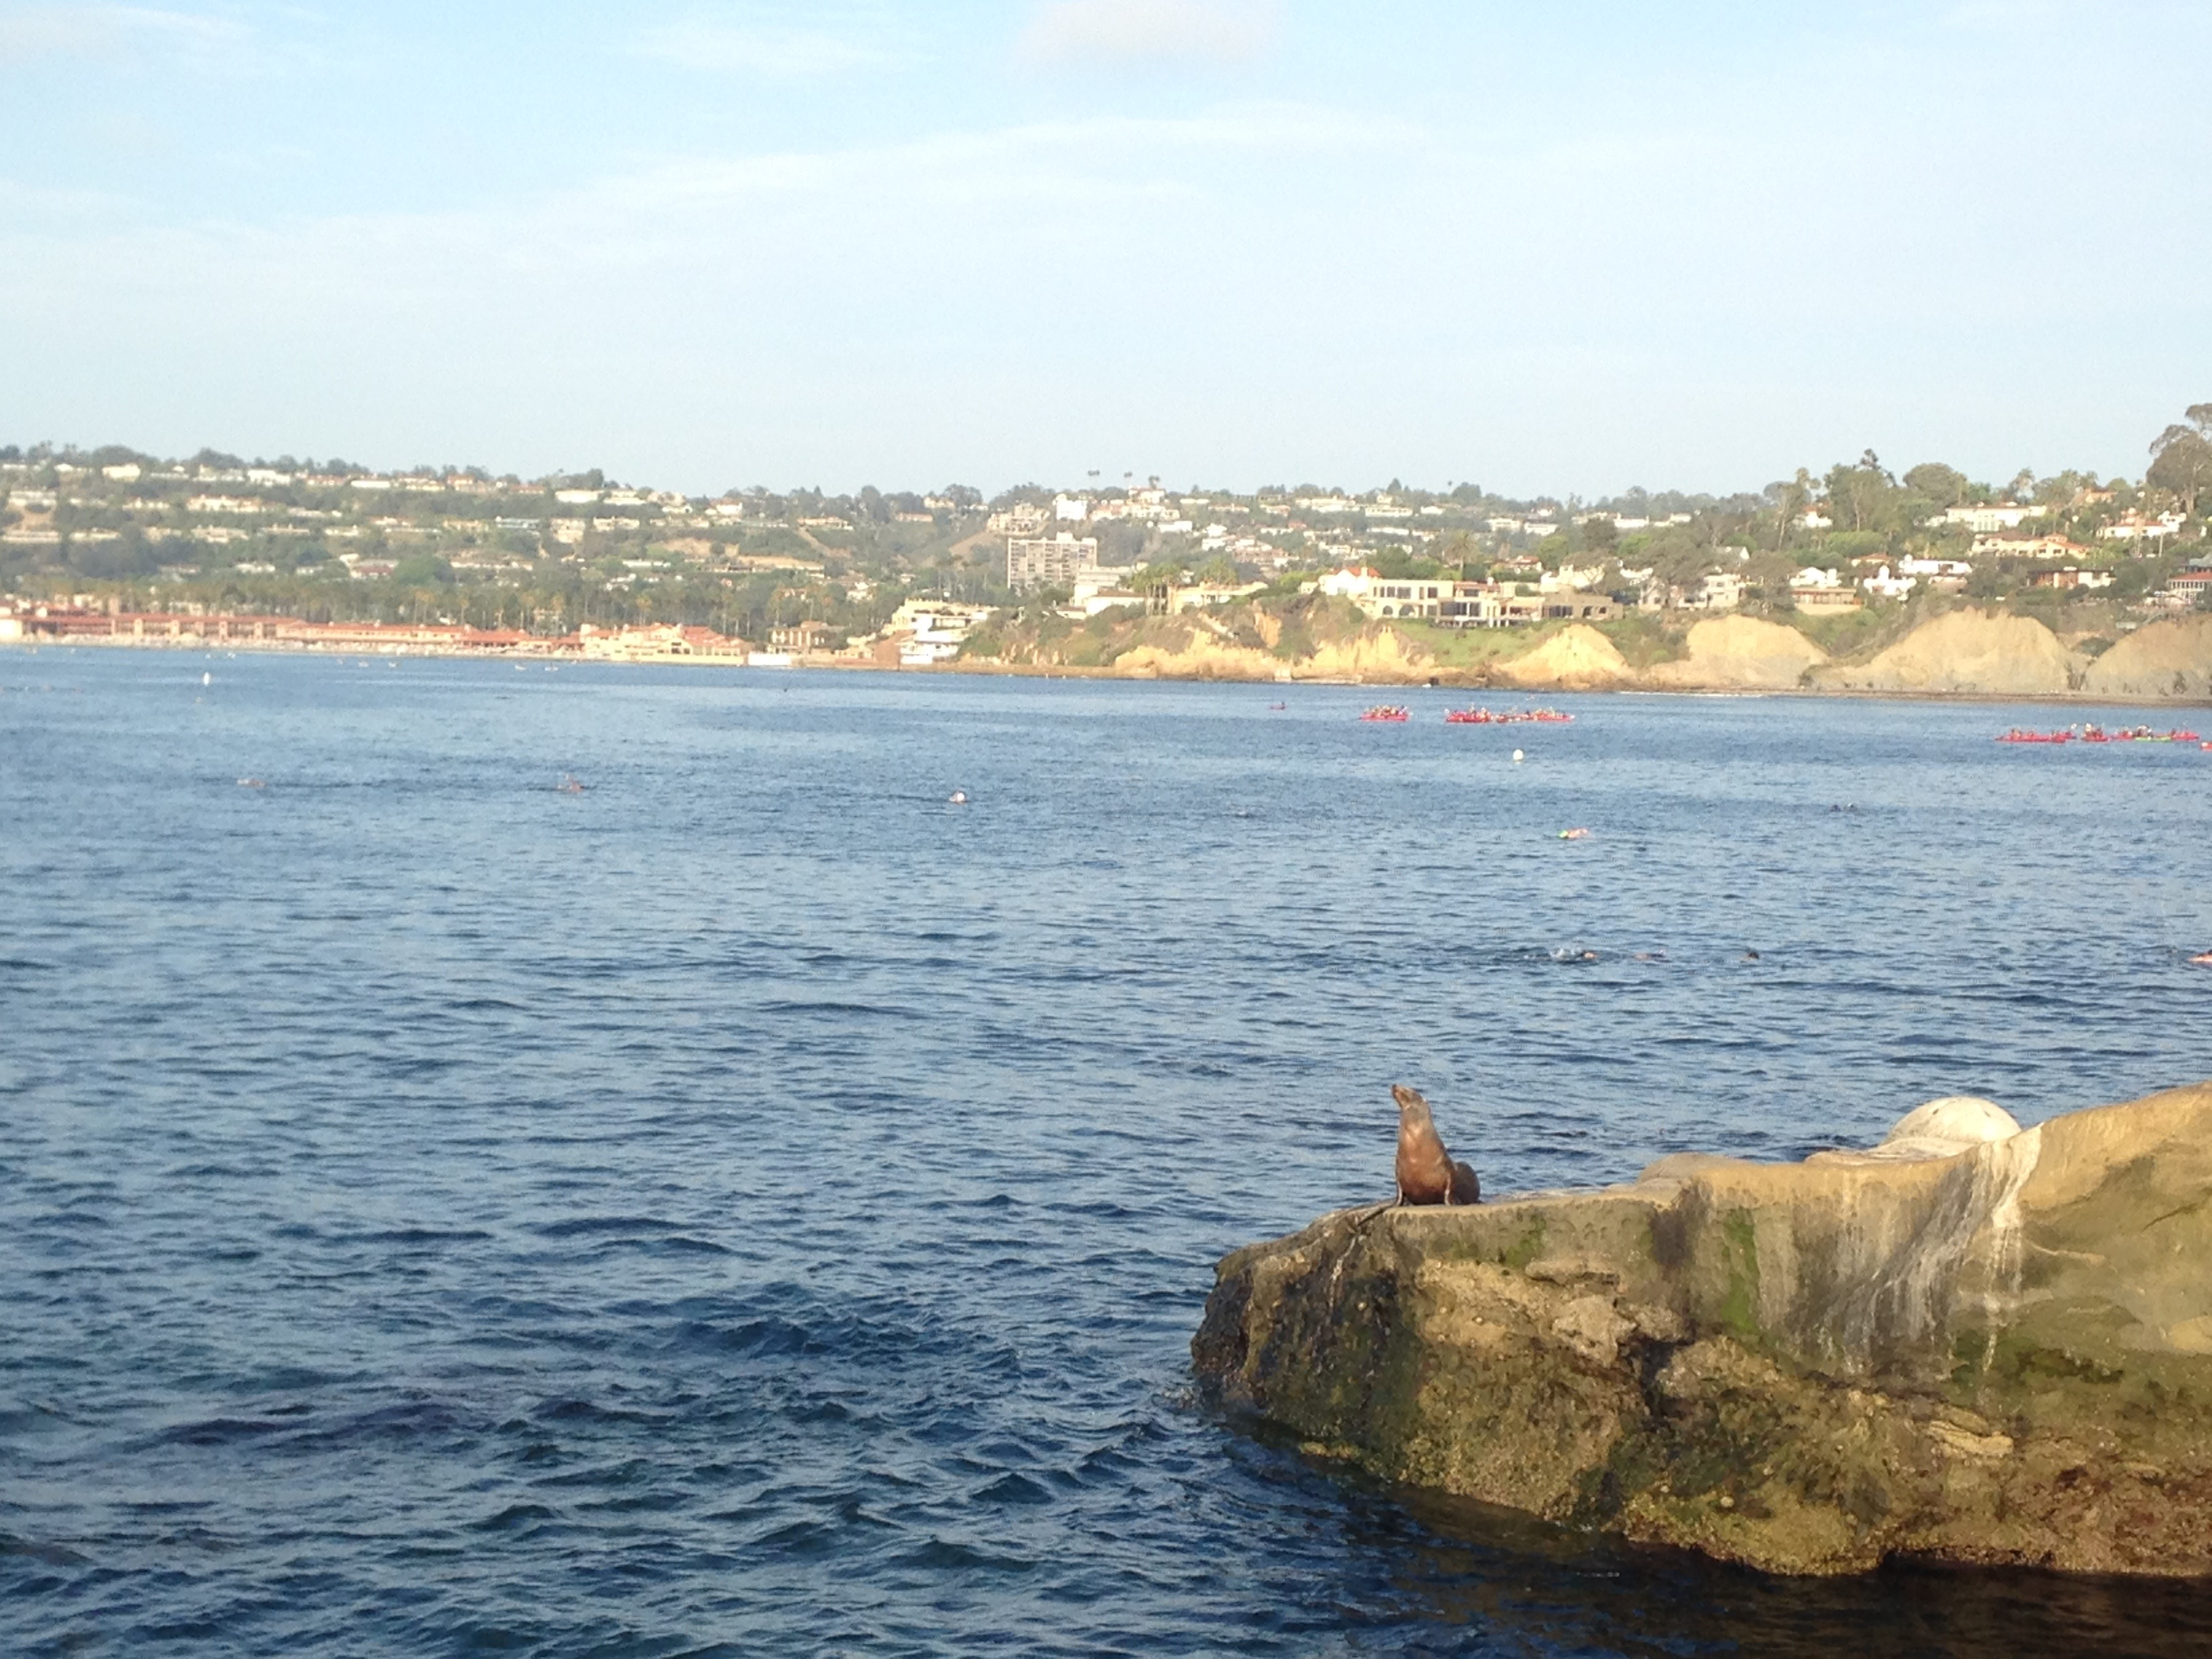 LaJolla_sealion_sitting